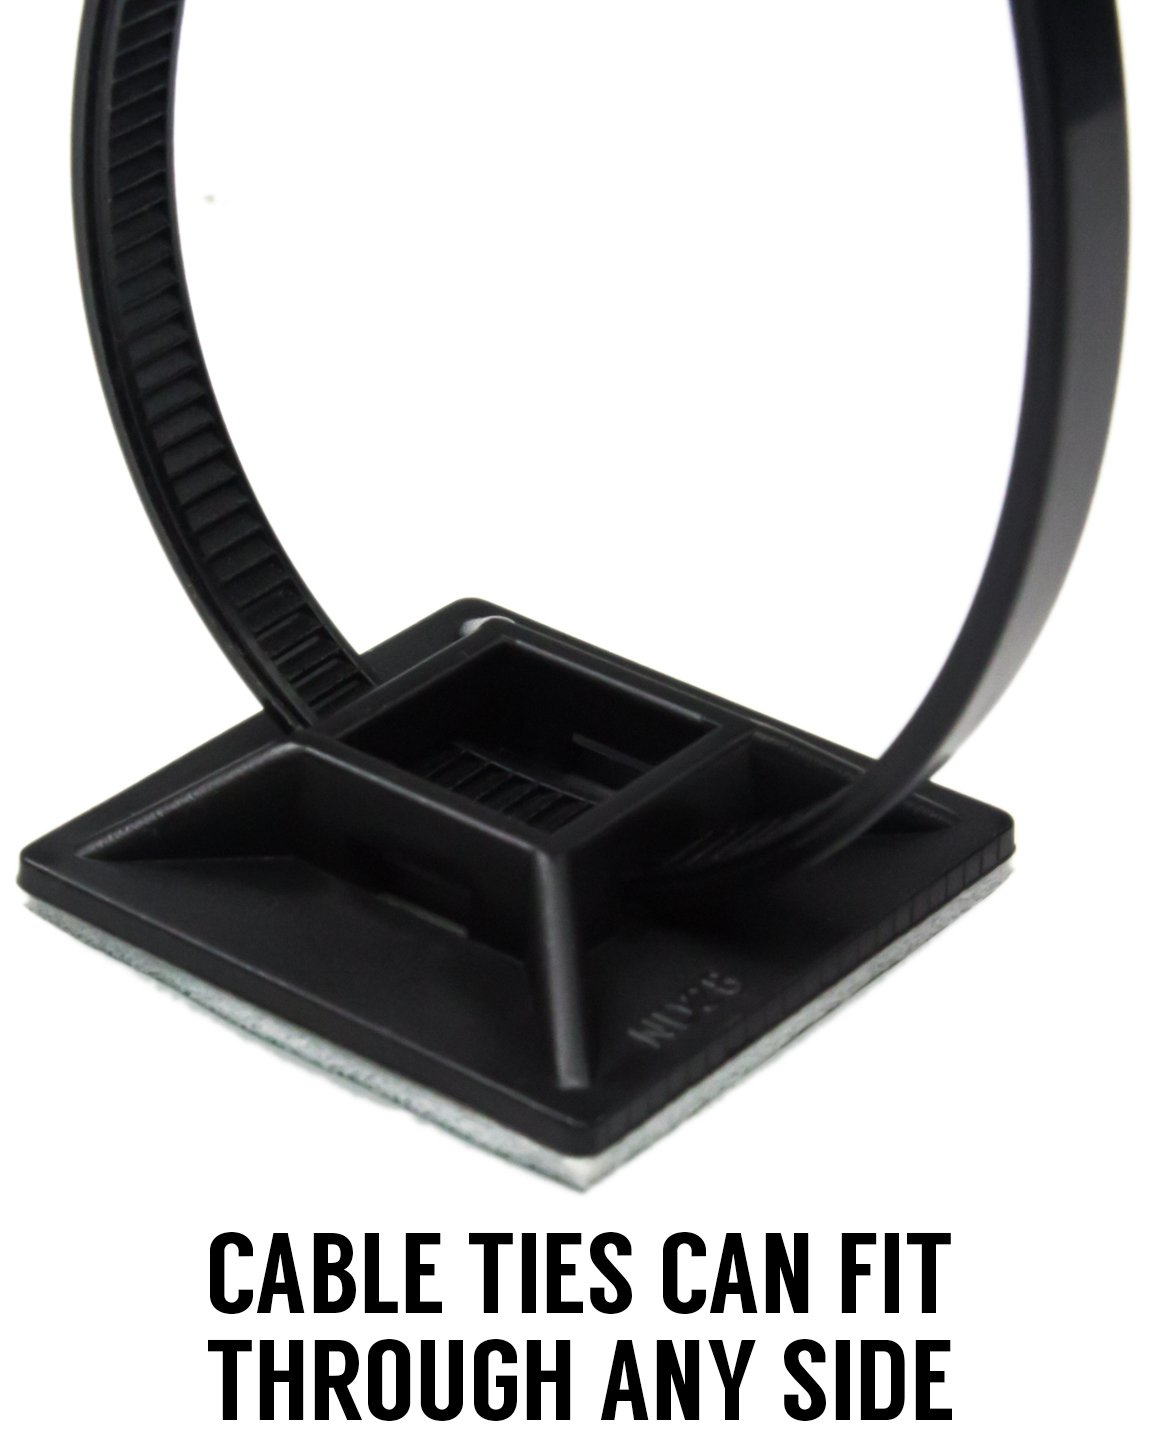 Zip Tie Adhesive-Backed Mounts 100 Pack by Nova Supply. Professional-Grade, UV Black Cable Tie Bases: 1.1 x 1.1. Screw-Hole Anchor Point Provides Optimal Strength for Long-Term Durability & Use Nova Supply Zip Tie Bases 4330221854